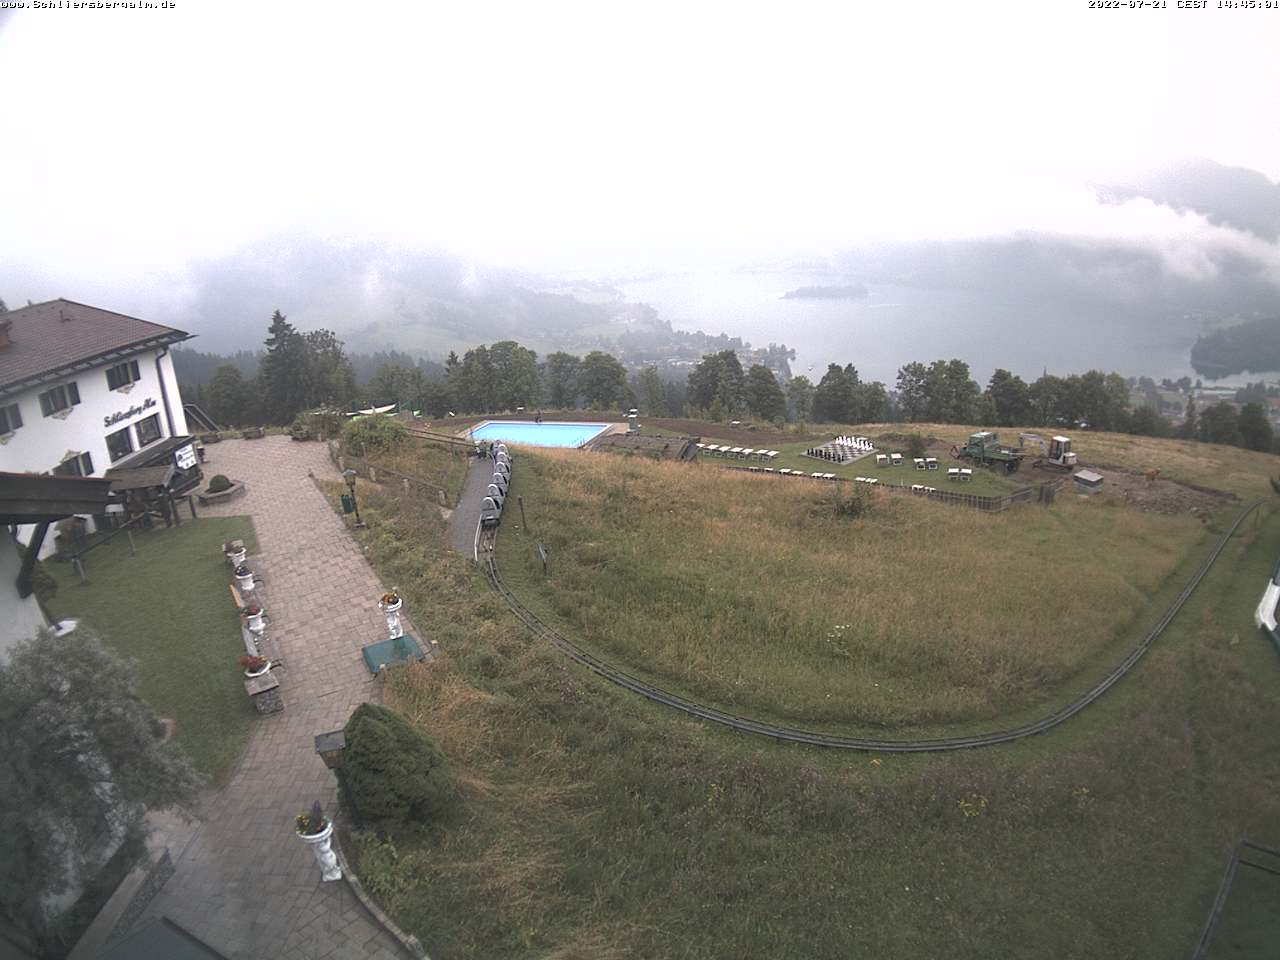 Schliersee, Schliersee Lake and Bavarian Alps